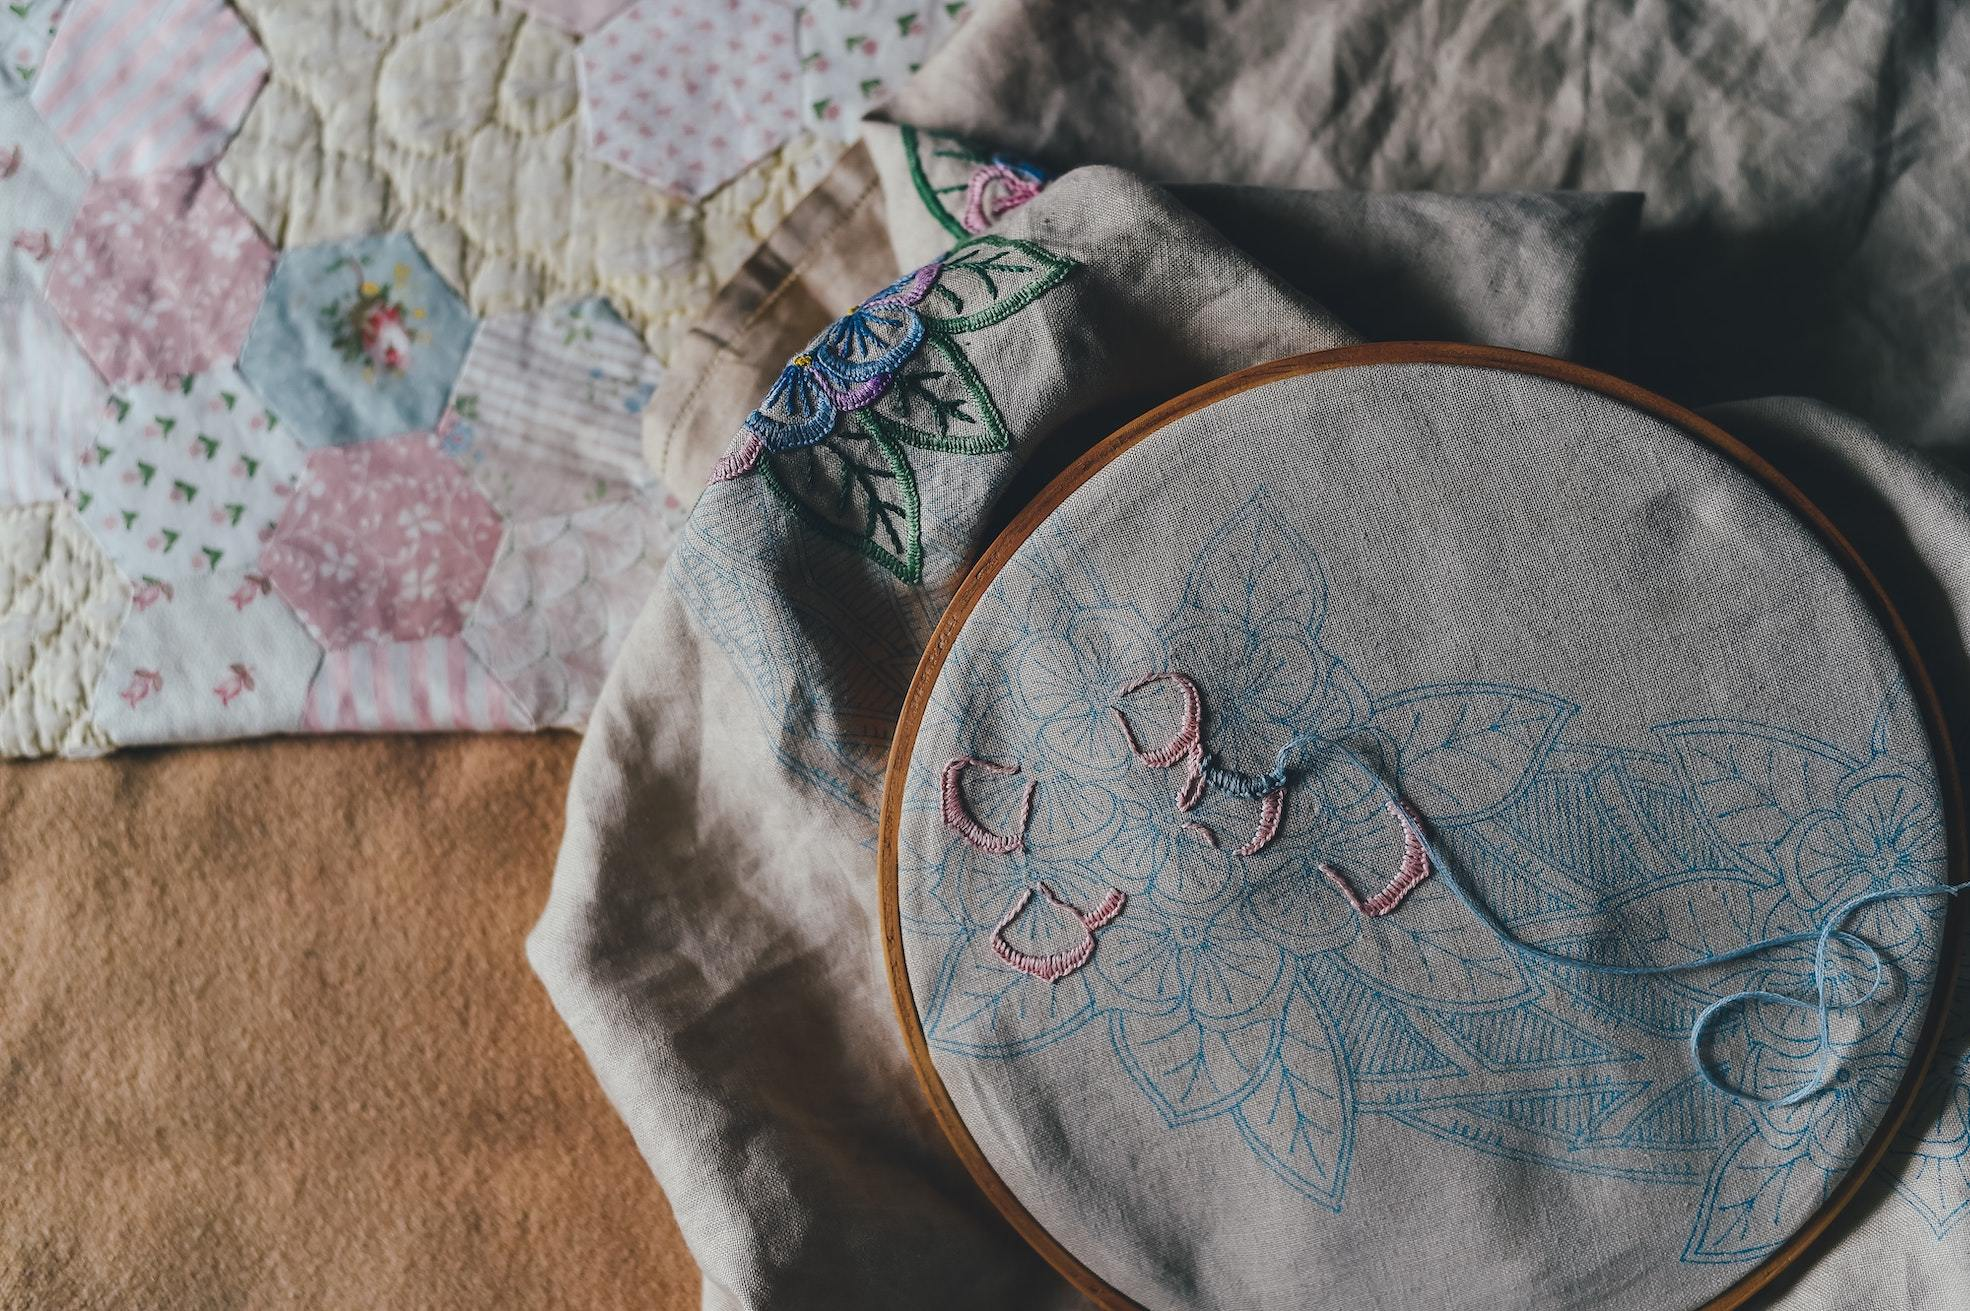 Why Sewing is an Important Traditional Skill